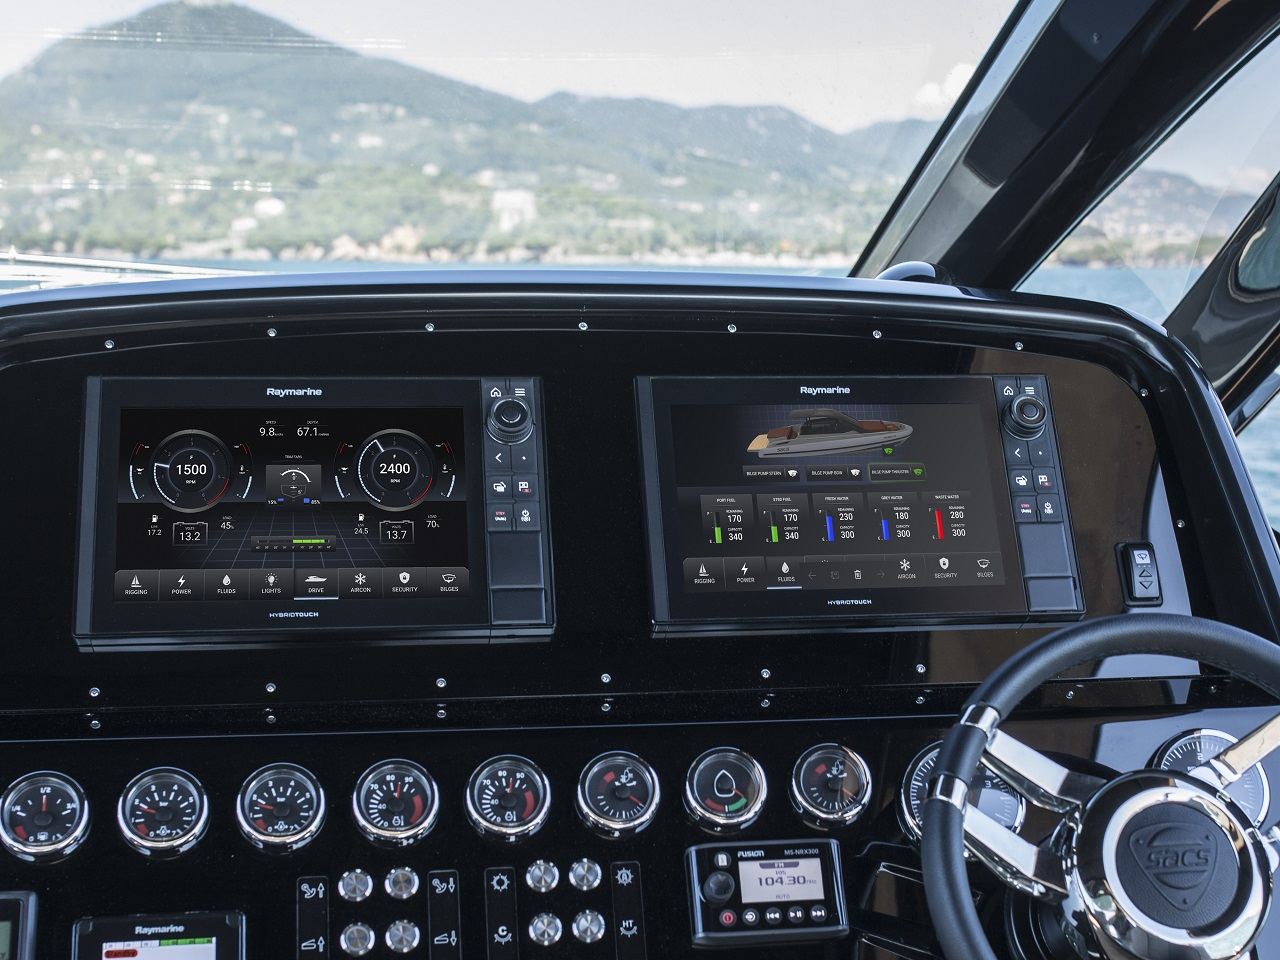 FLIR Systems Introduces Raymarine YachtSense gives you total control of the boat, in one hand